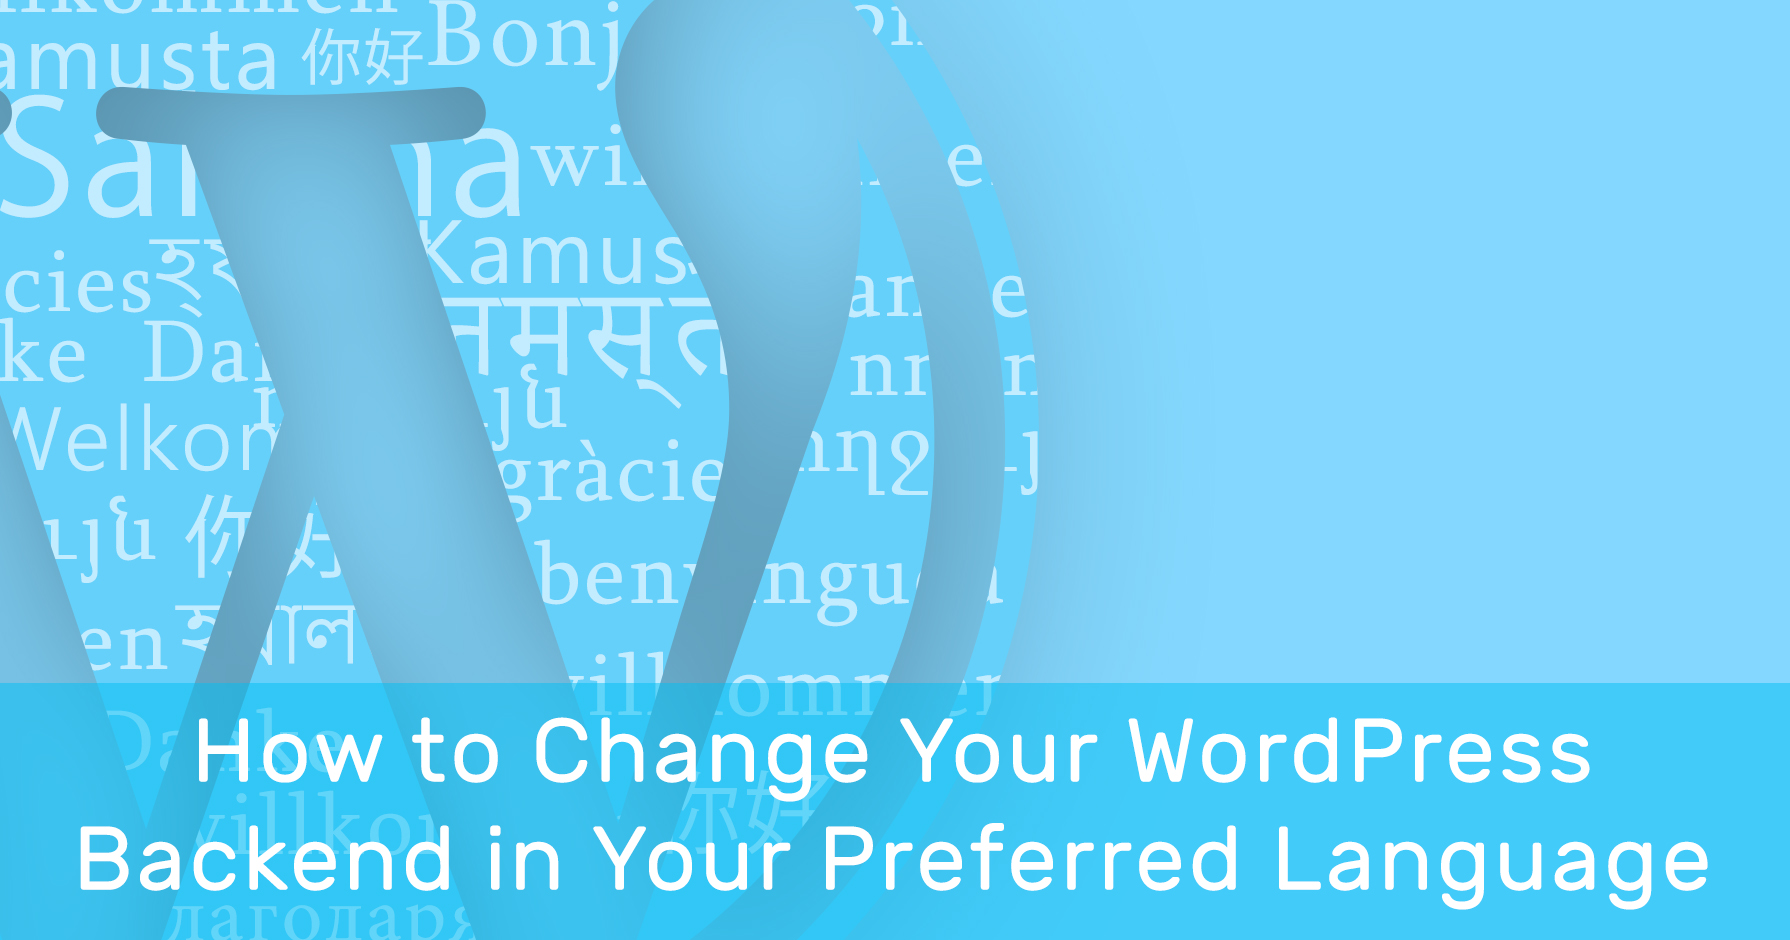 How to Change Your WordPress Backend in Your Preferred Language?